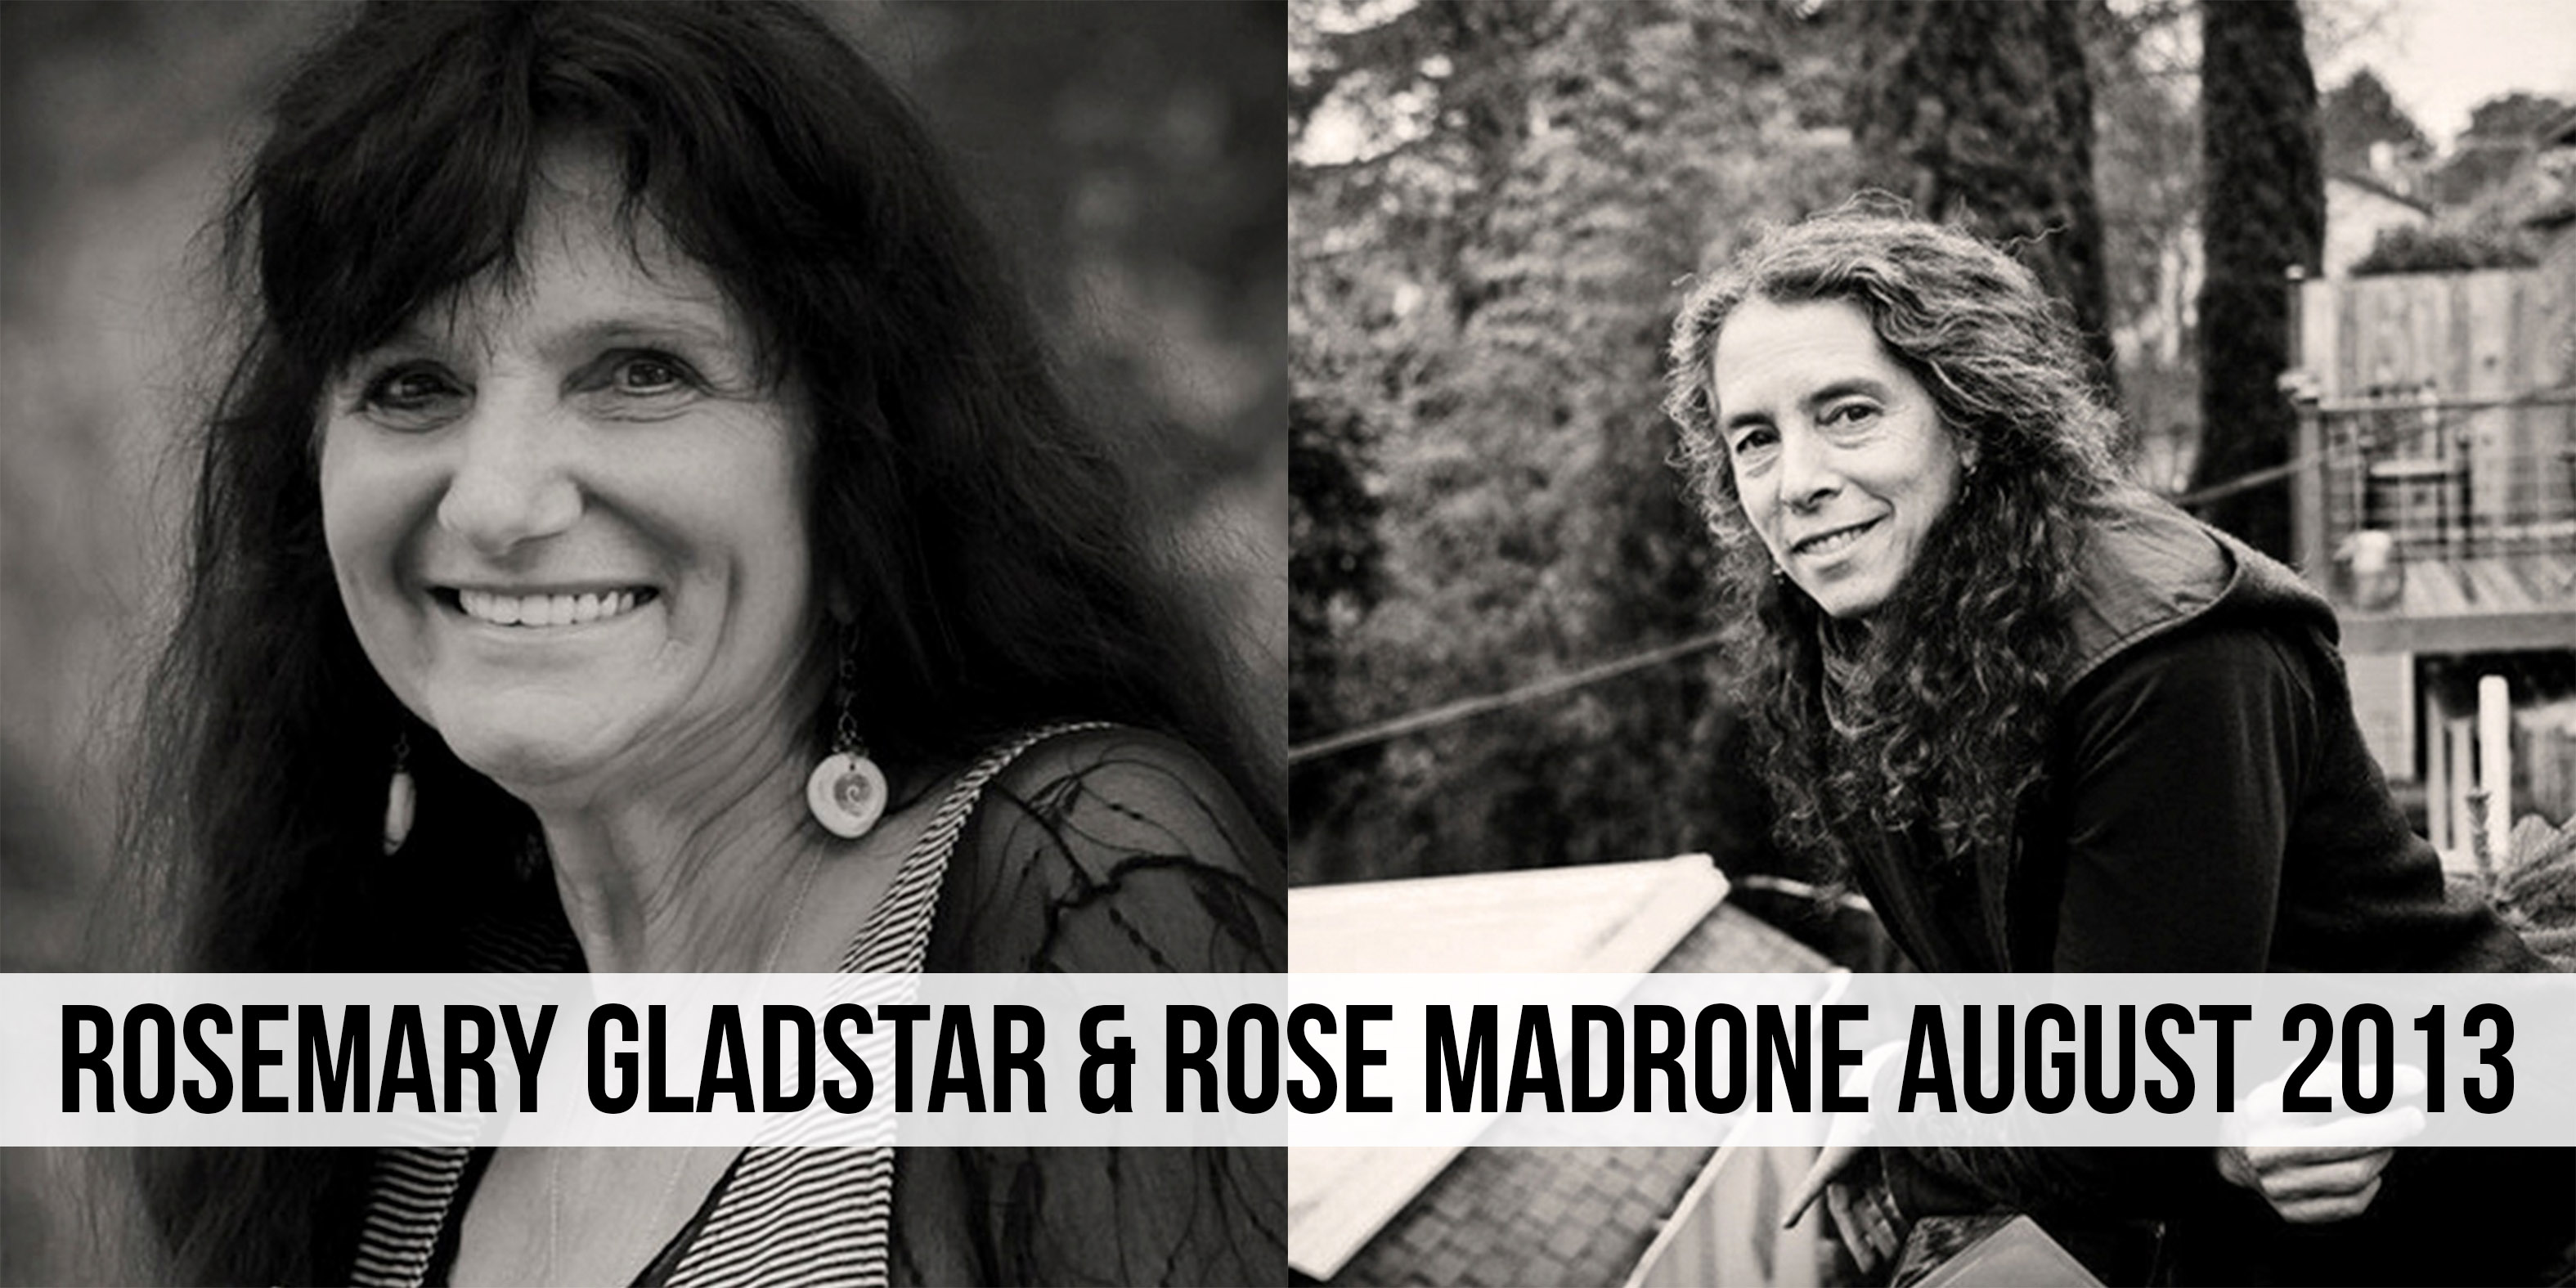 Rosemary Gladstar and Rose Madrone